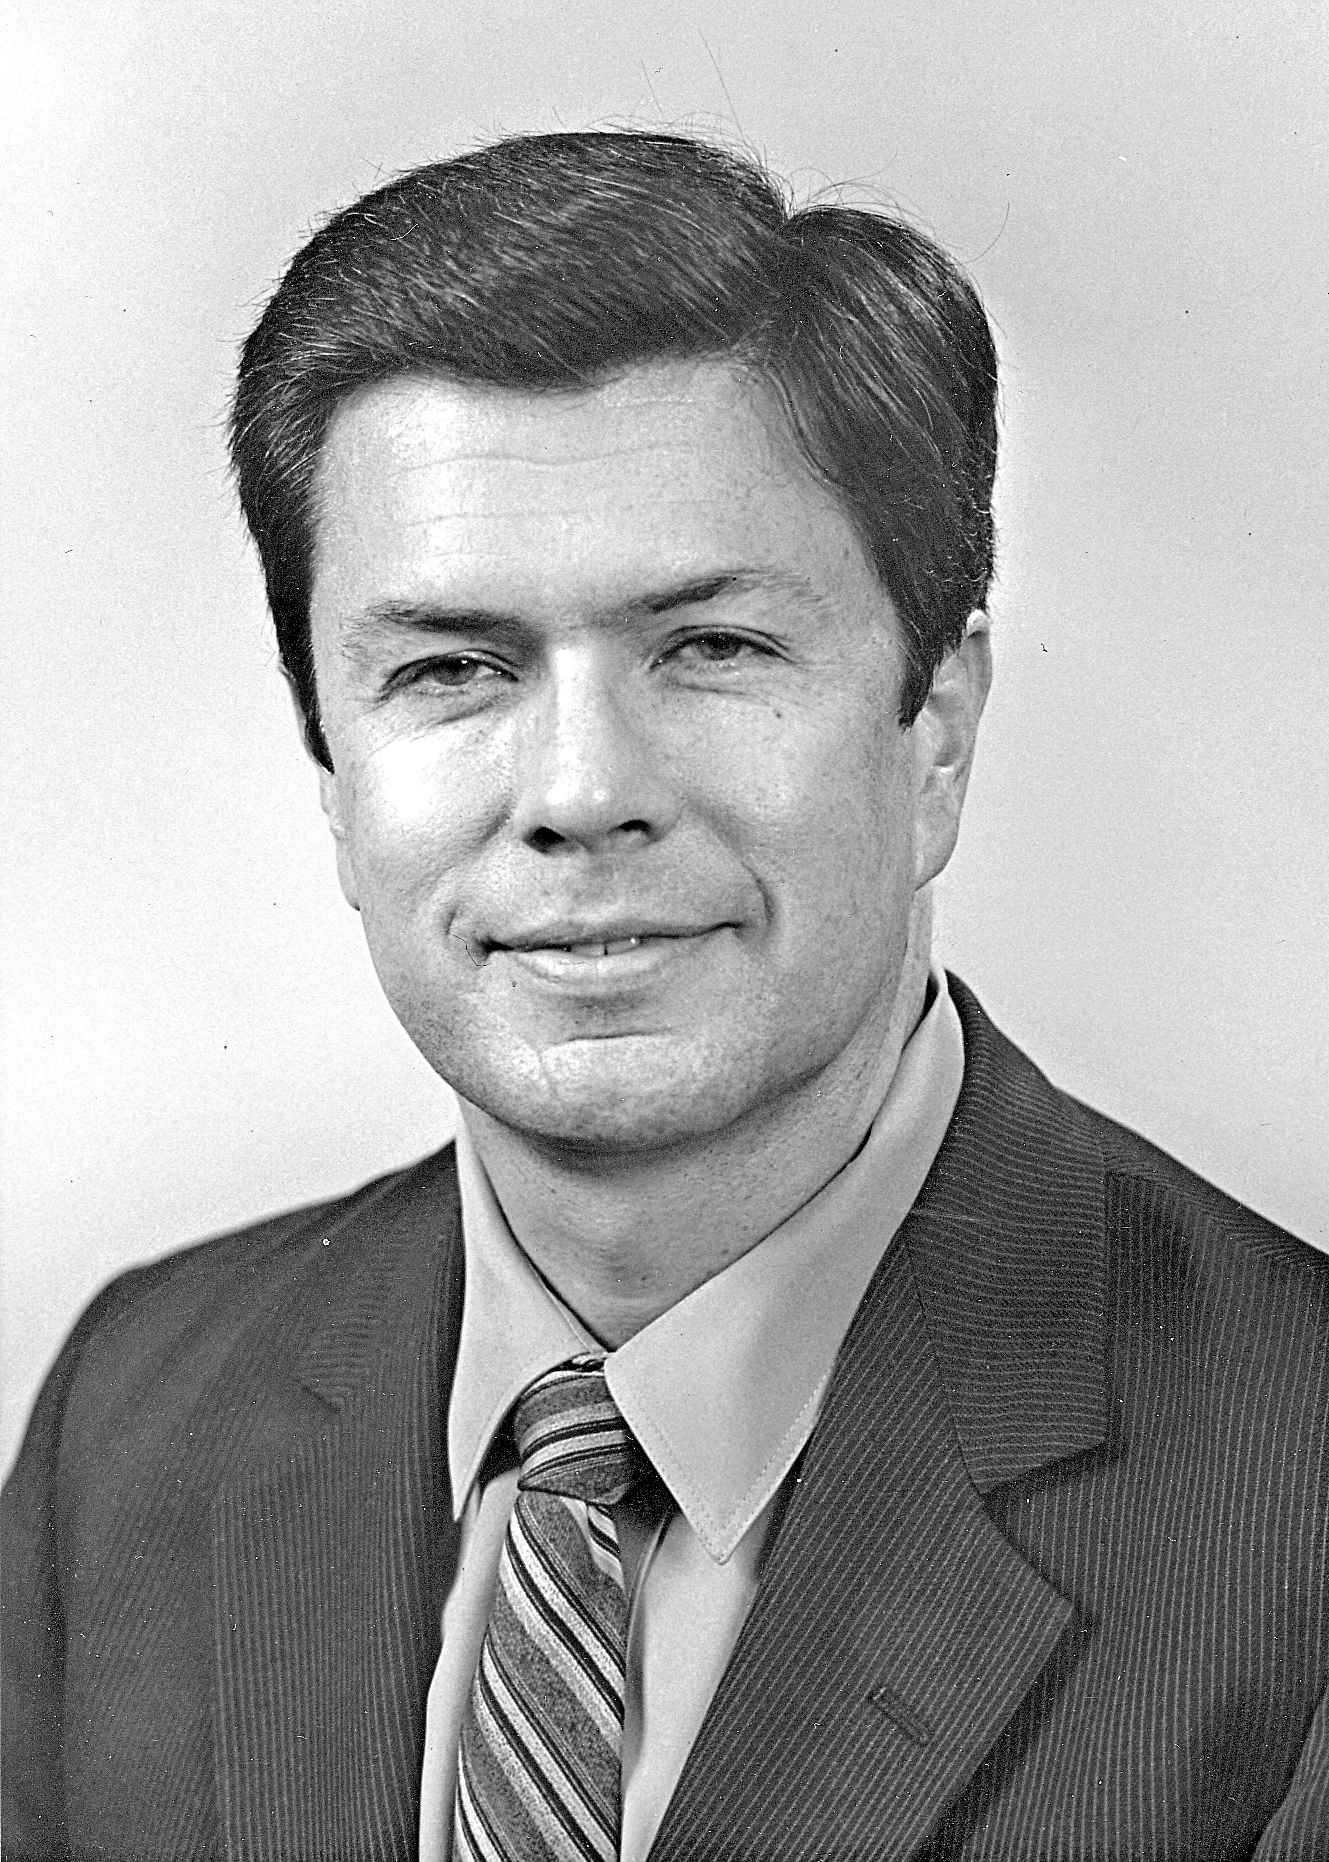 Vernon FIcken First President of the SWCSNM Technologist Section (term ending in 1973).